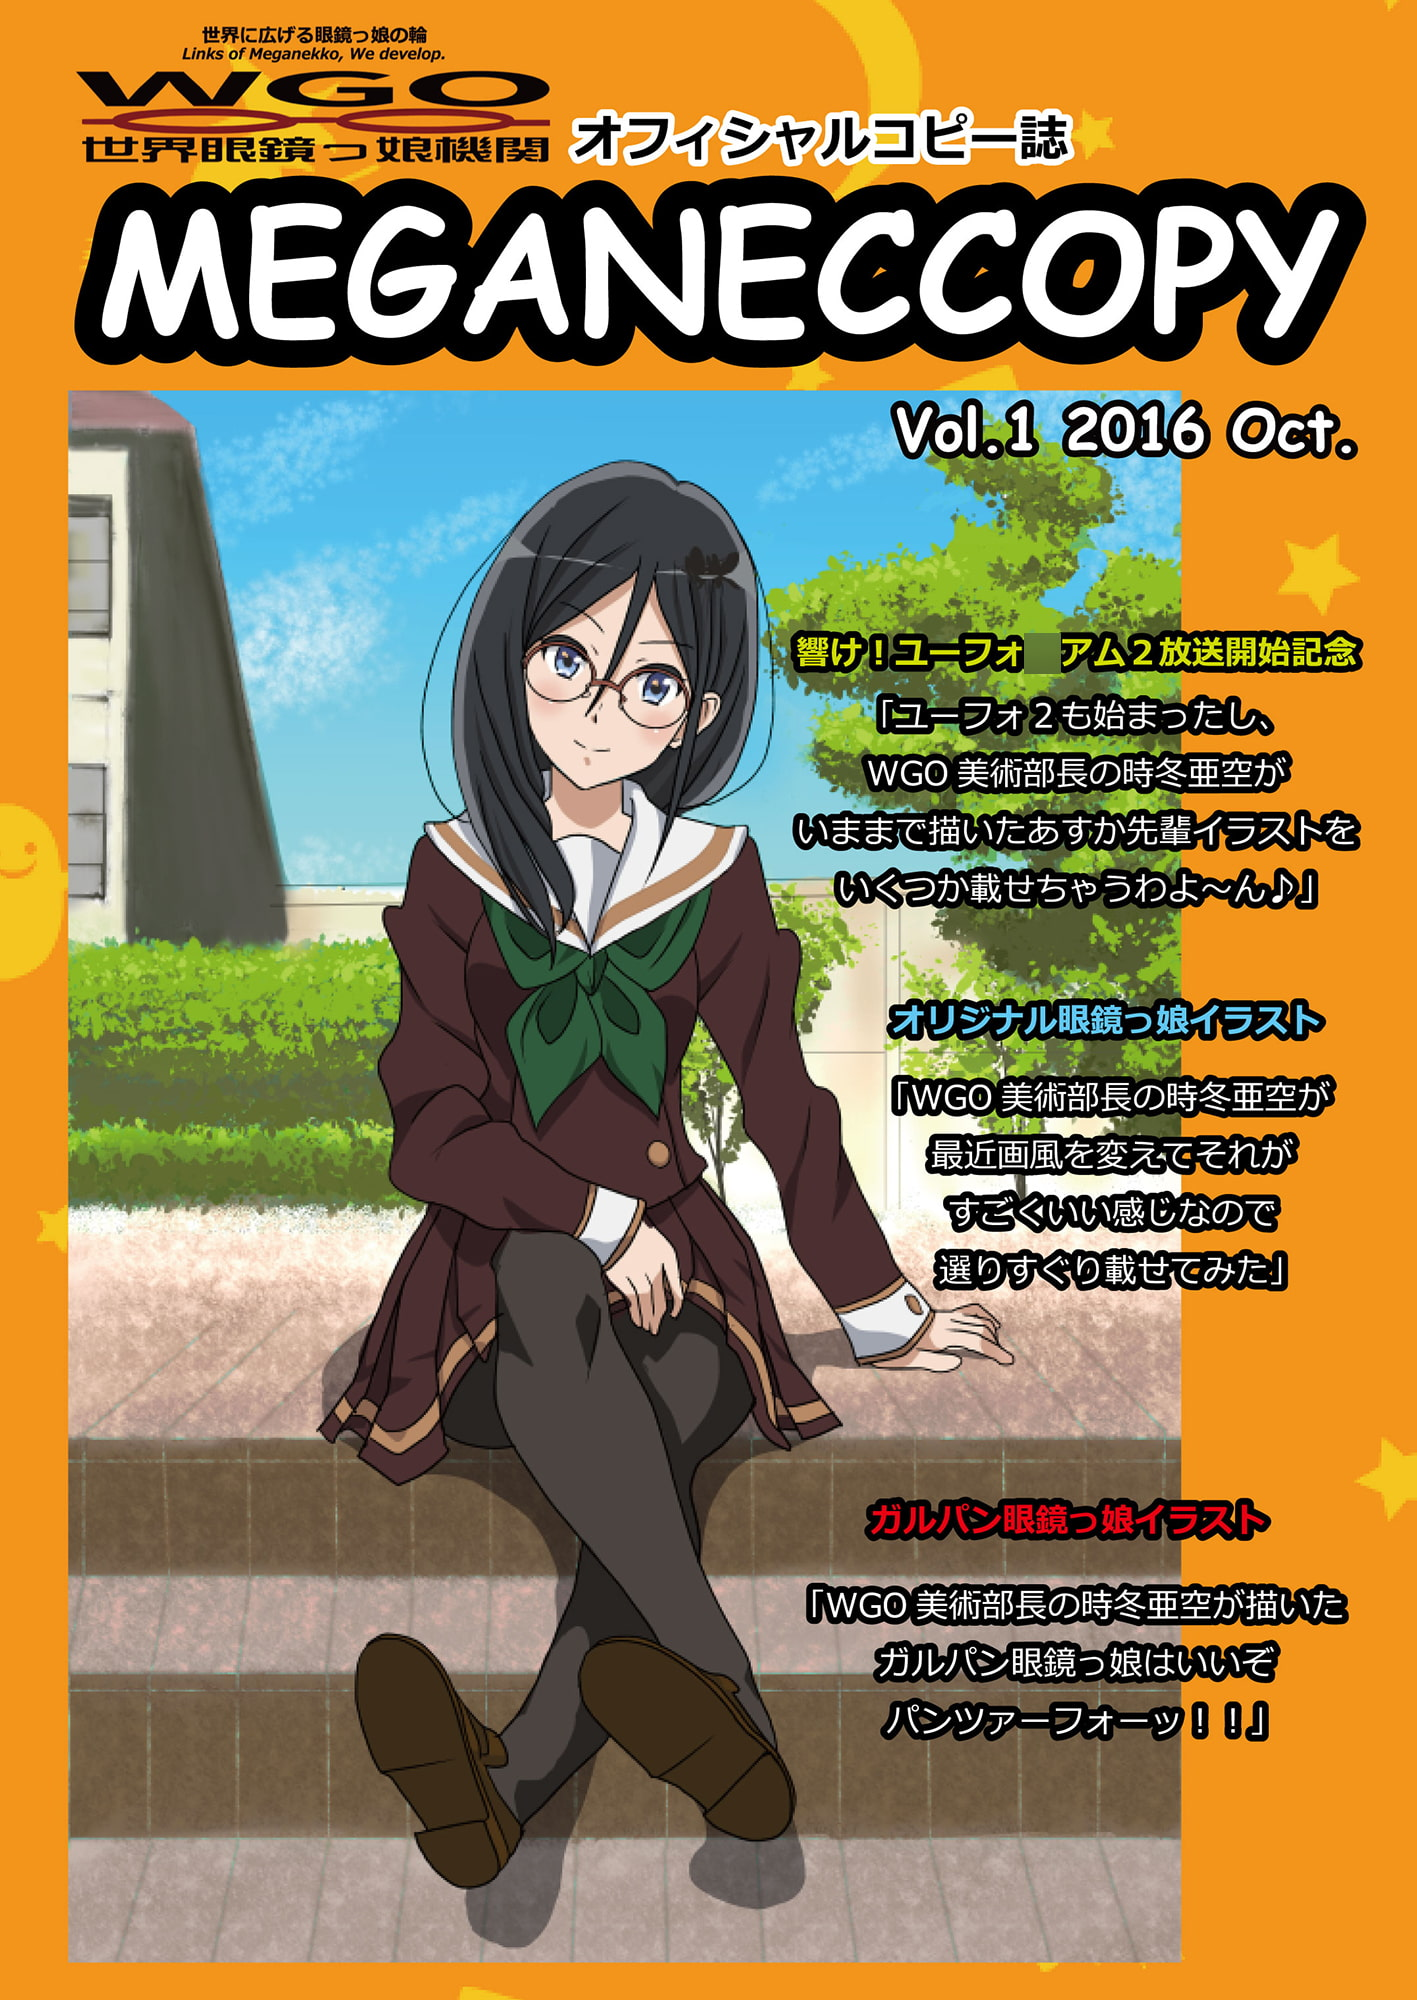 MEGANECCOPY Vol.1 2016 Oct. [World Glassesgirls Organisation]